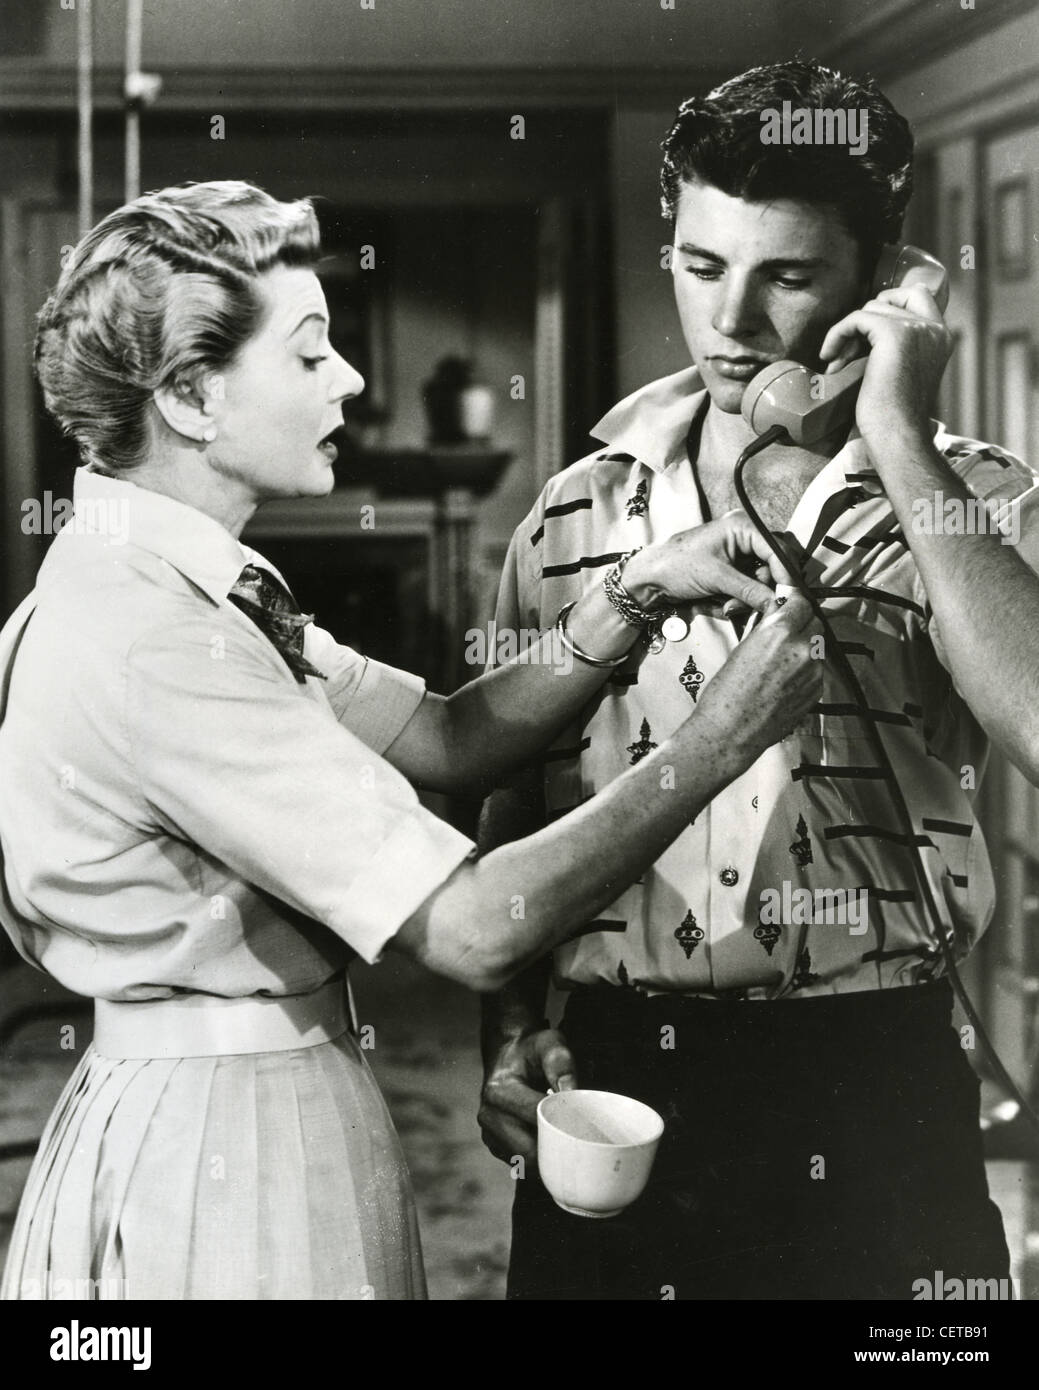 THE ADVENTURES OF OZZIE AND HARRIET  - Ricky Nelson and Harriet Hilliard in US TV series (1952-1966) - Stock Image